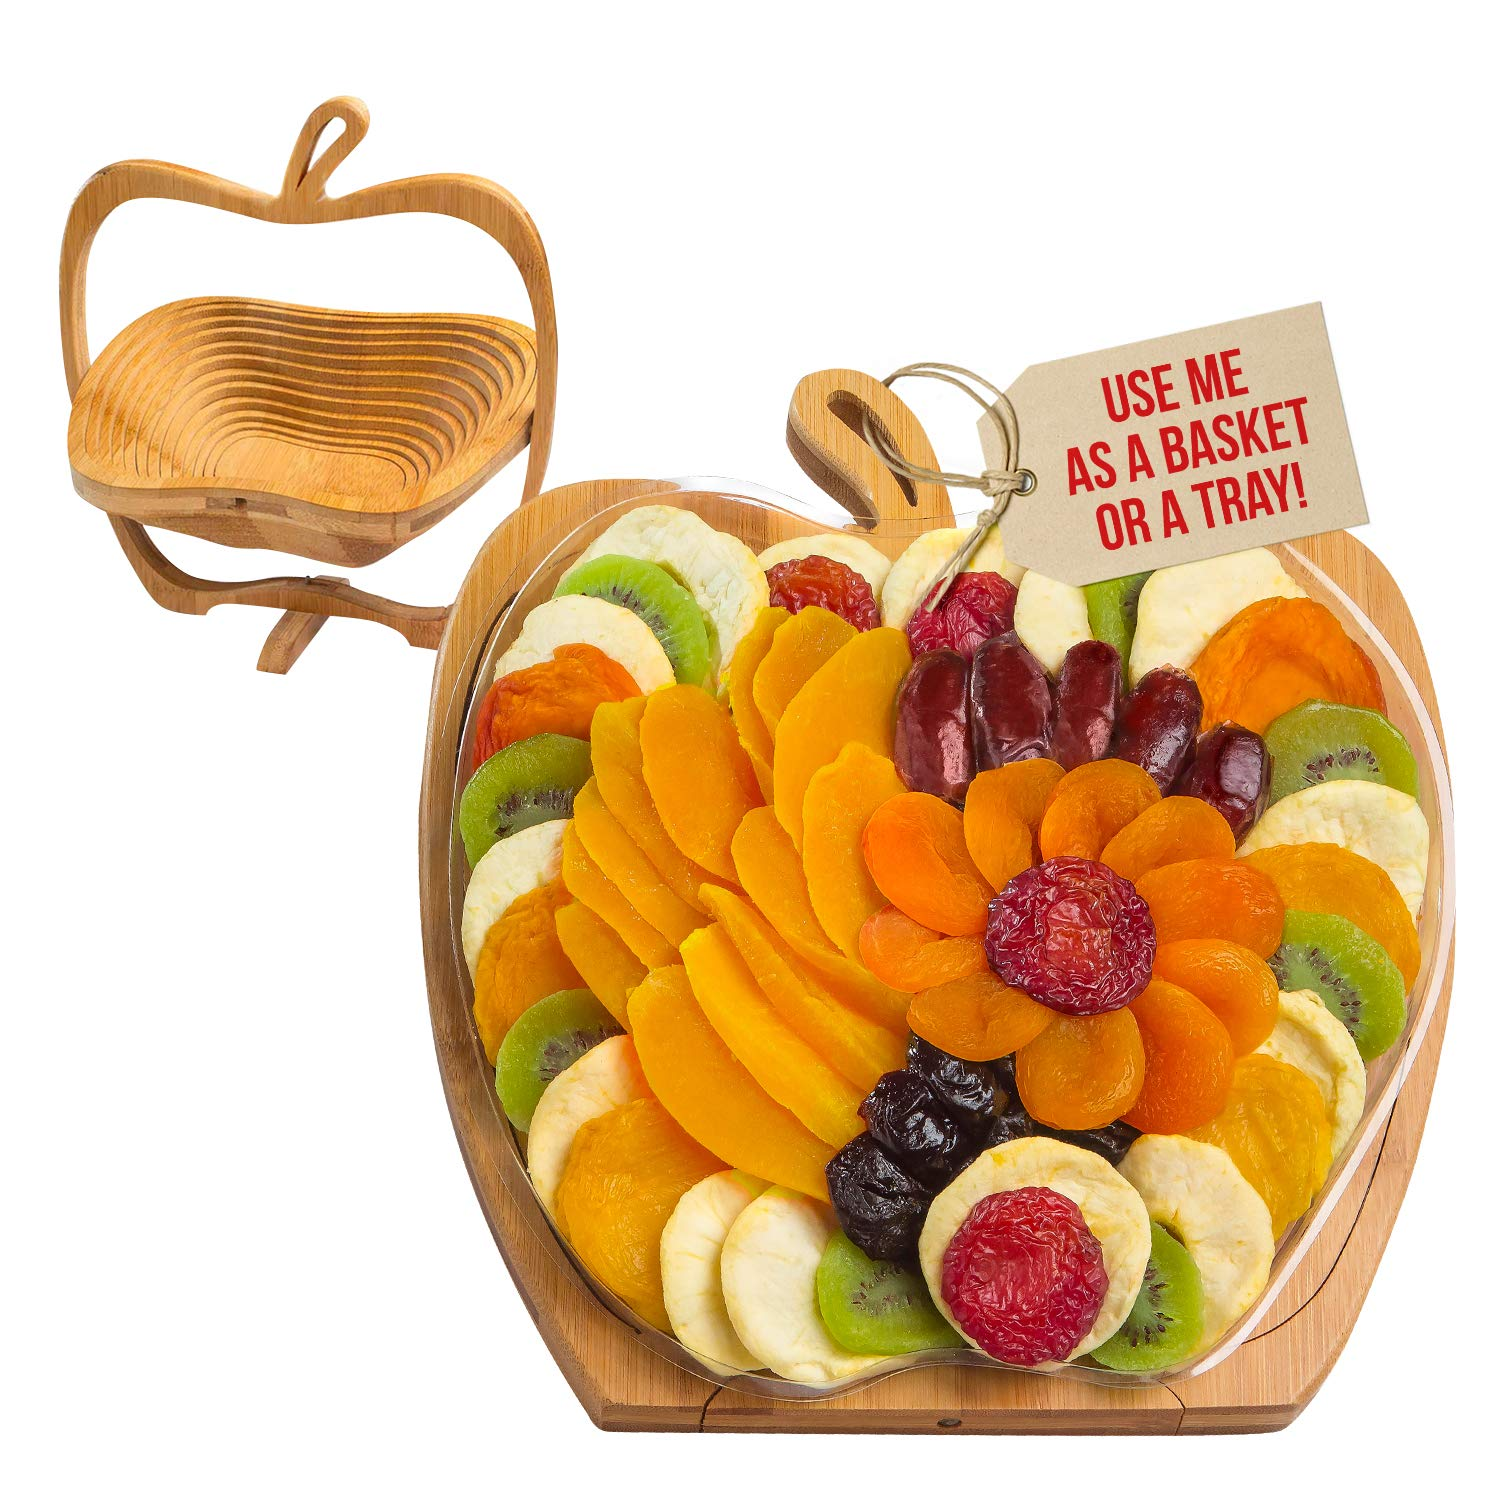 Dried Fruit Gift Basket - Tray Turns into Basket - Healthy Gourmet Snack Box - Holiday Food Tray - Great for Birthday, Sympathy, Father's Day, Christmas, or as a Corporate Tray - Bonnie & Pop by BONNIE AND POP